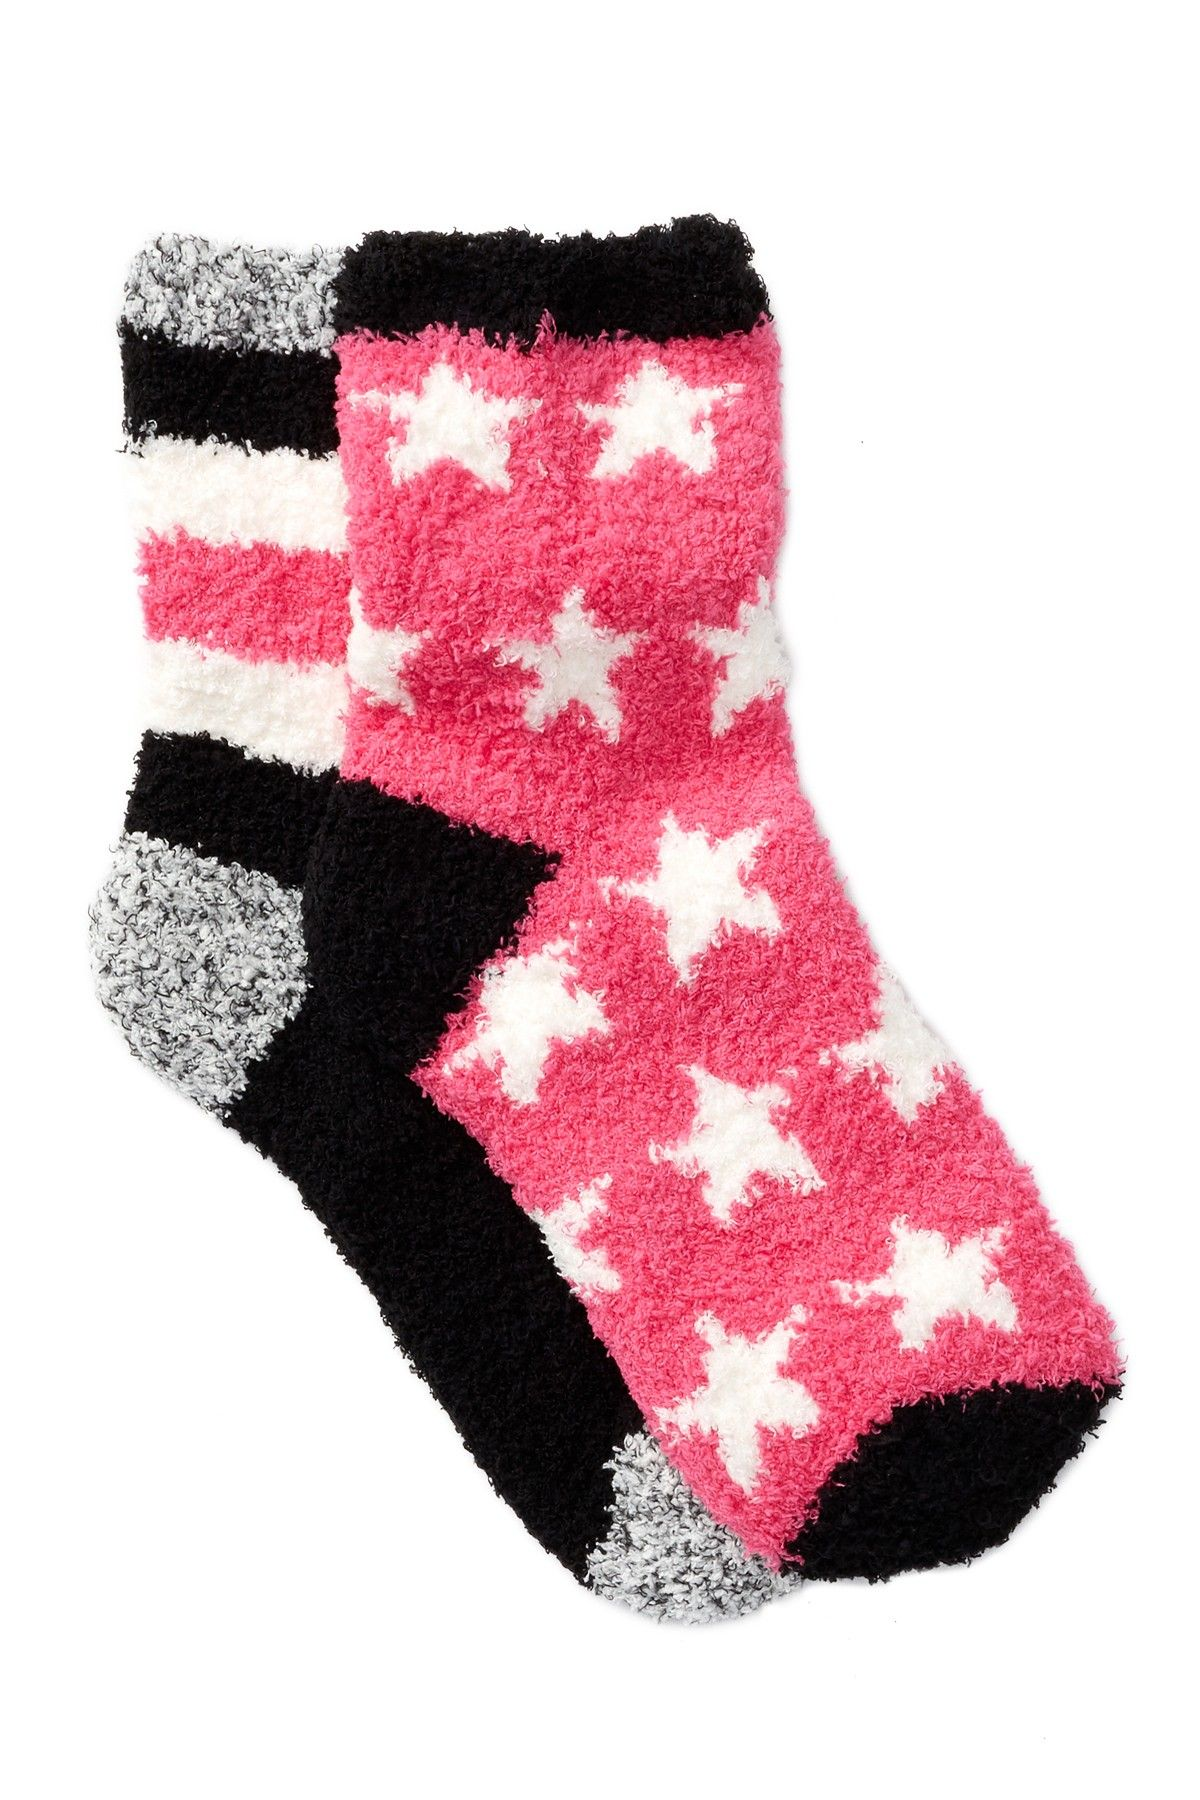 Free Press Patterned Fuzzy Socks - Pack of 2   Socks, Nordstrom and ...